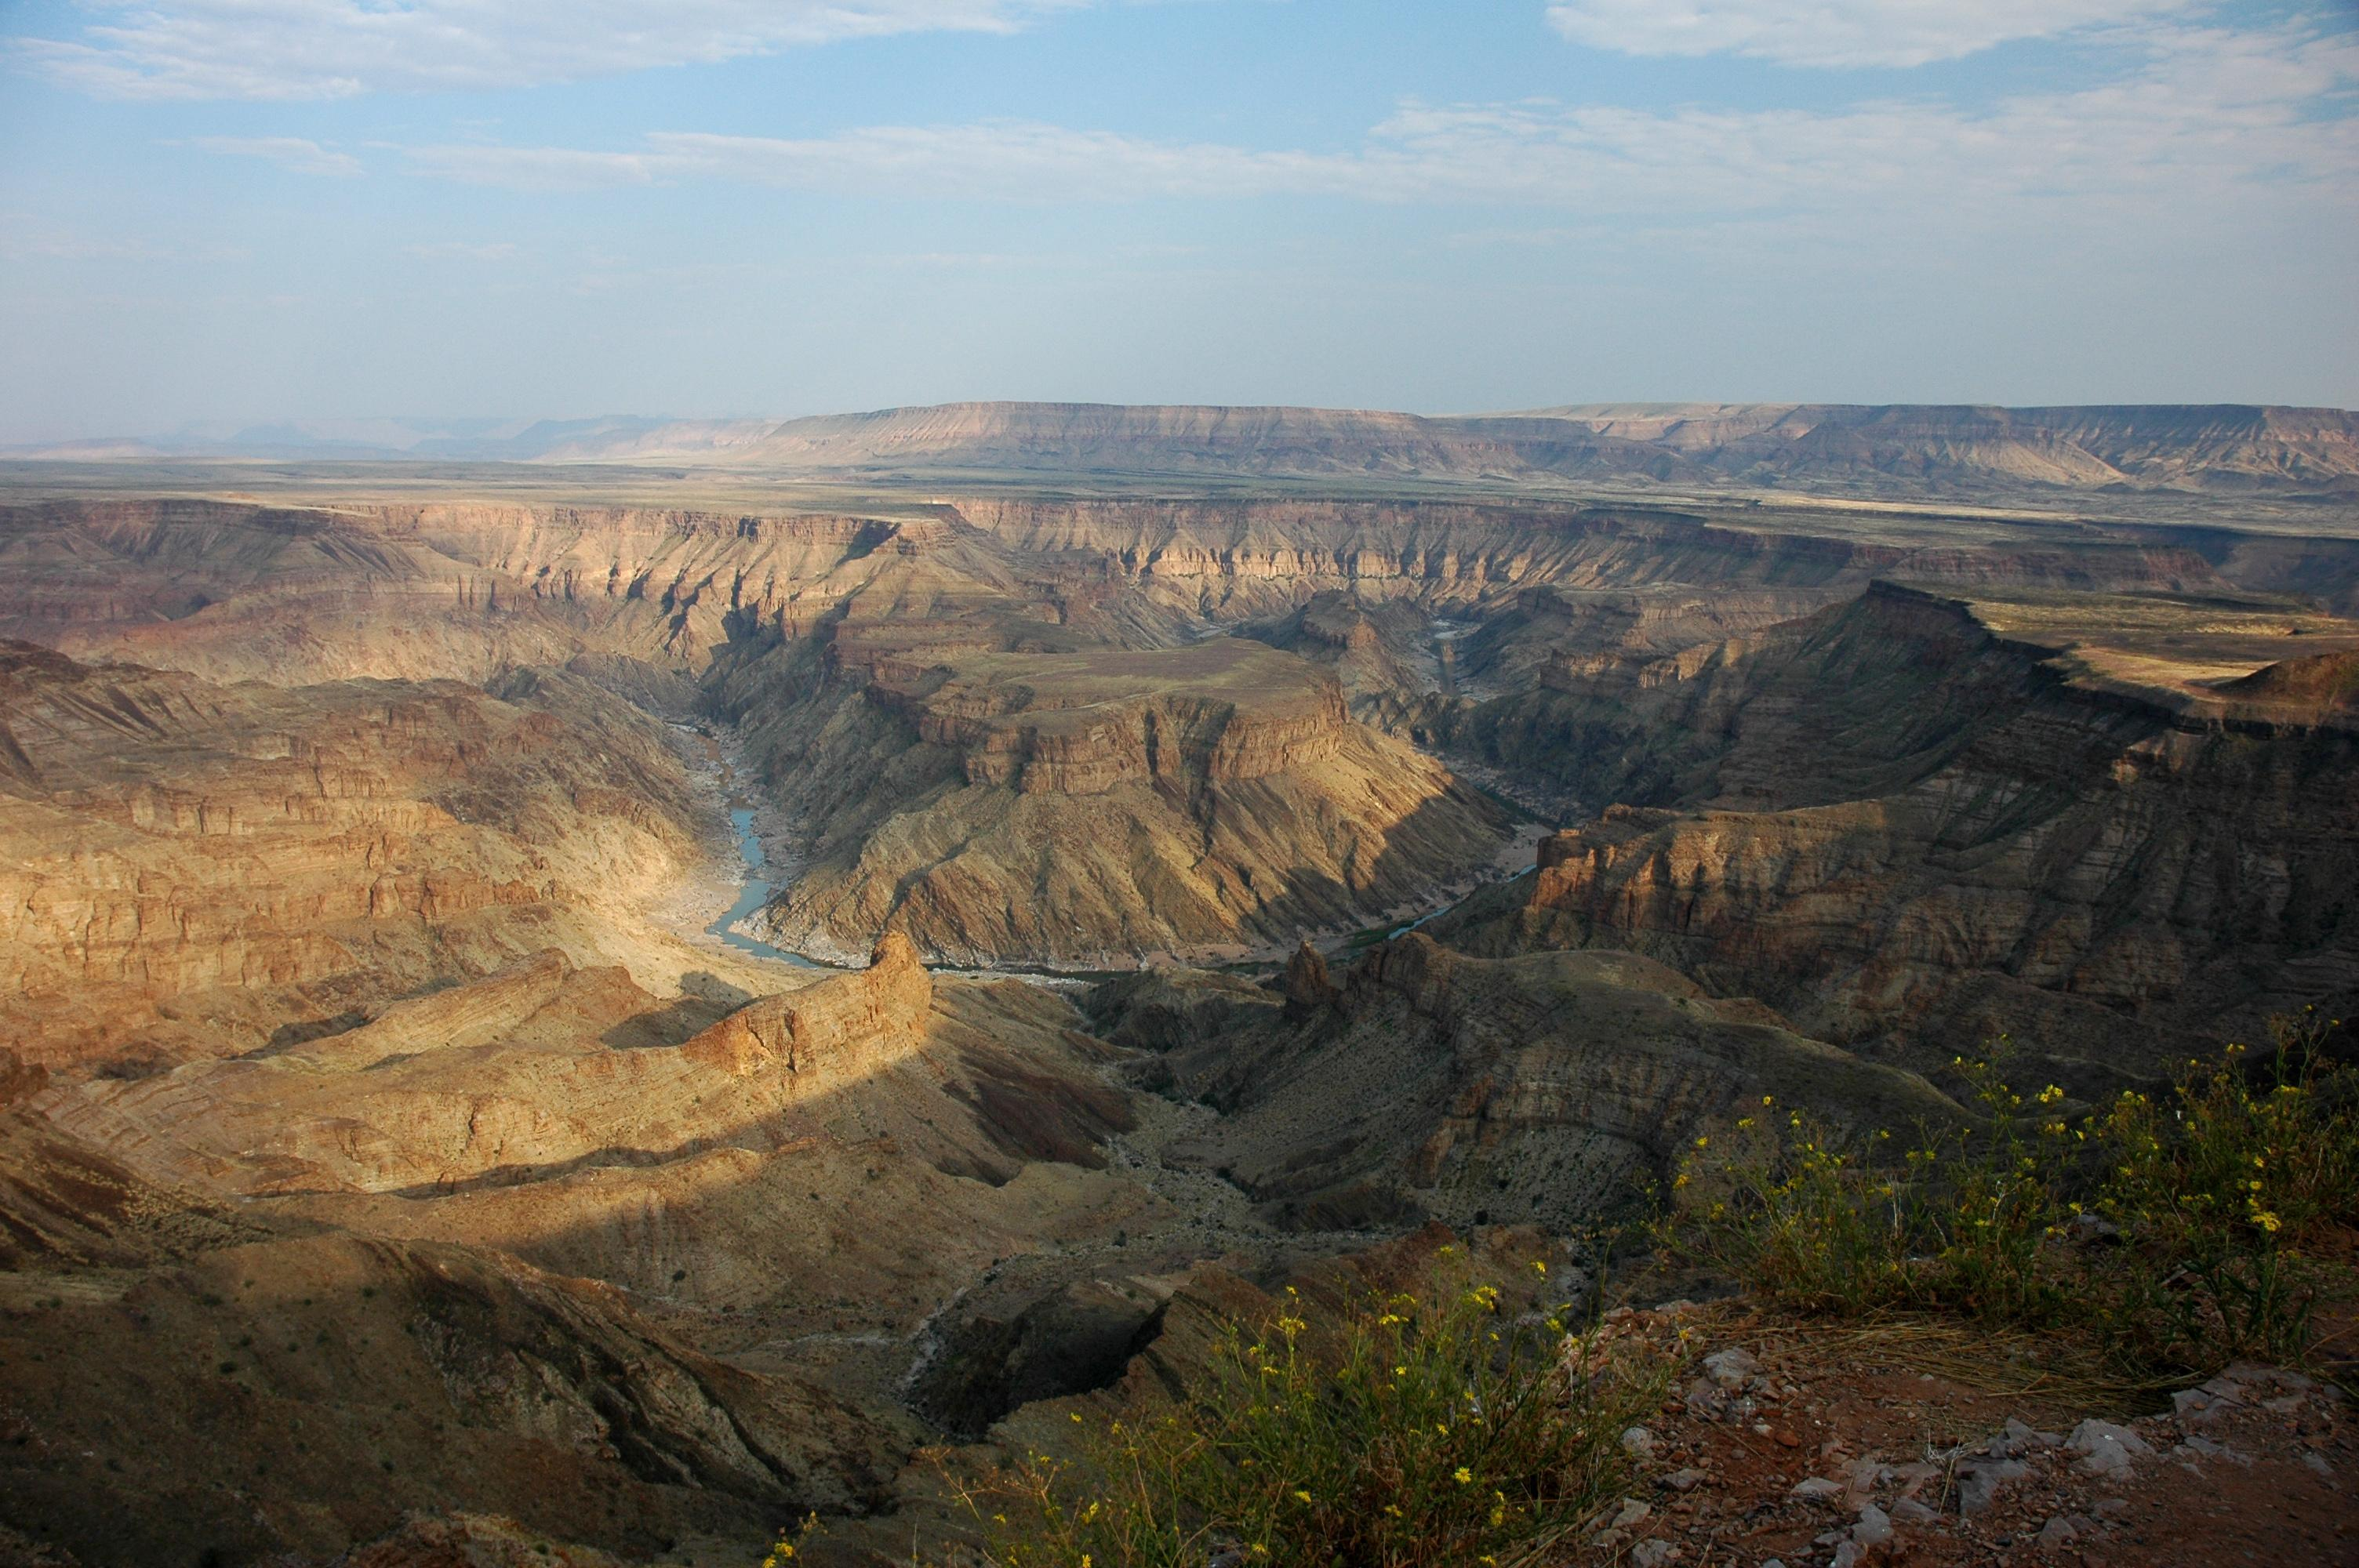 File:Namibie Fish River Canyon 01.jpg - Wikimedia Commons